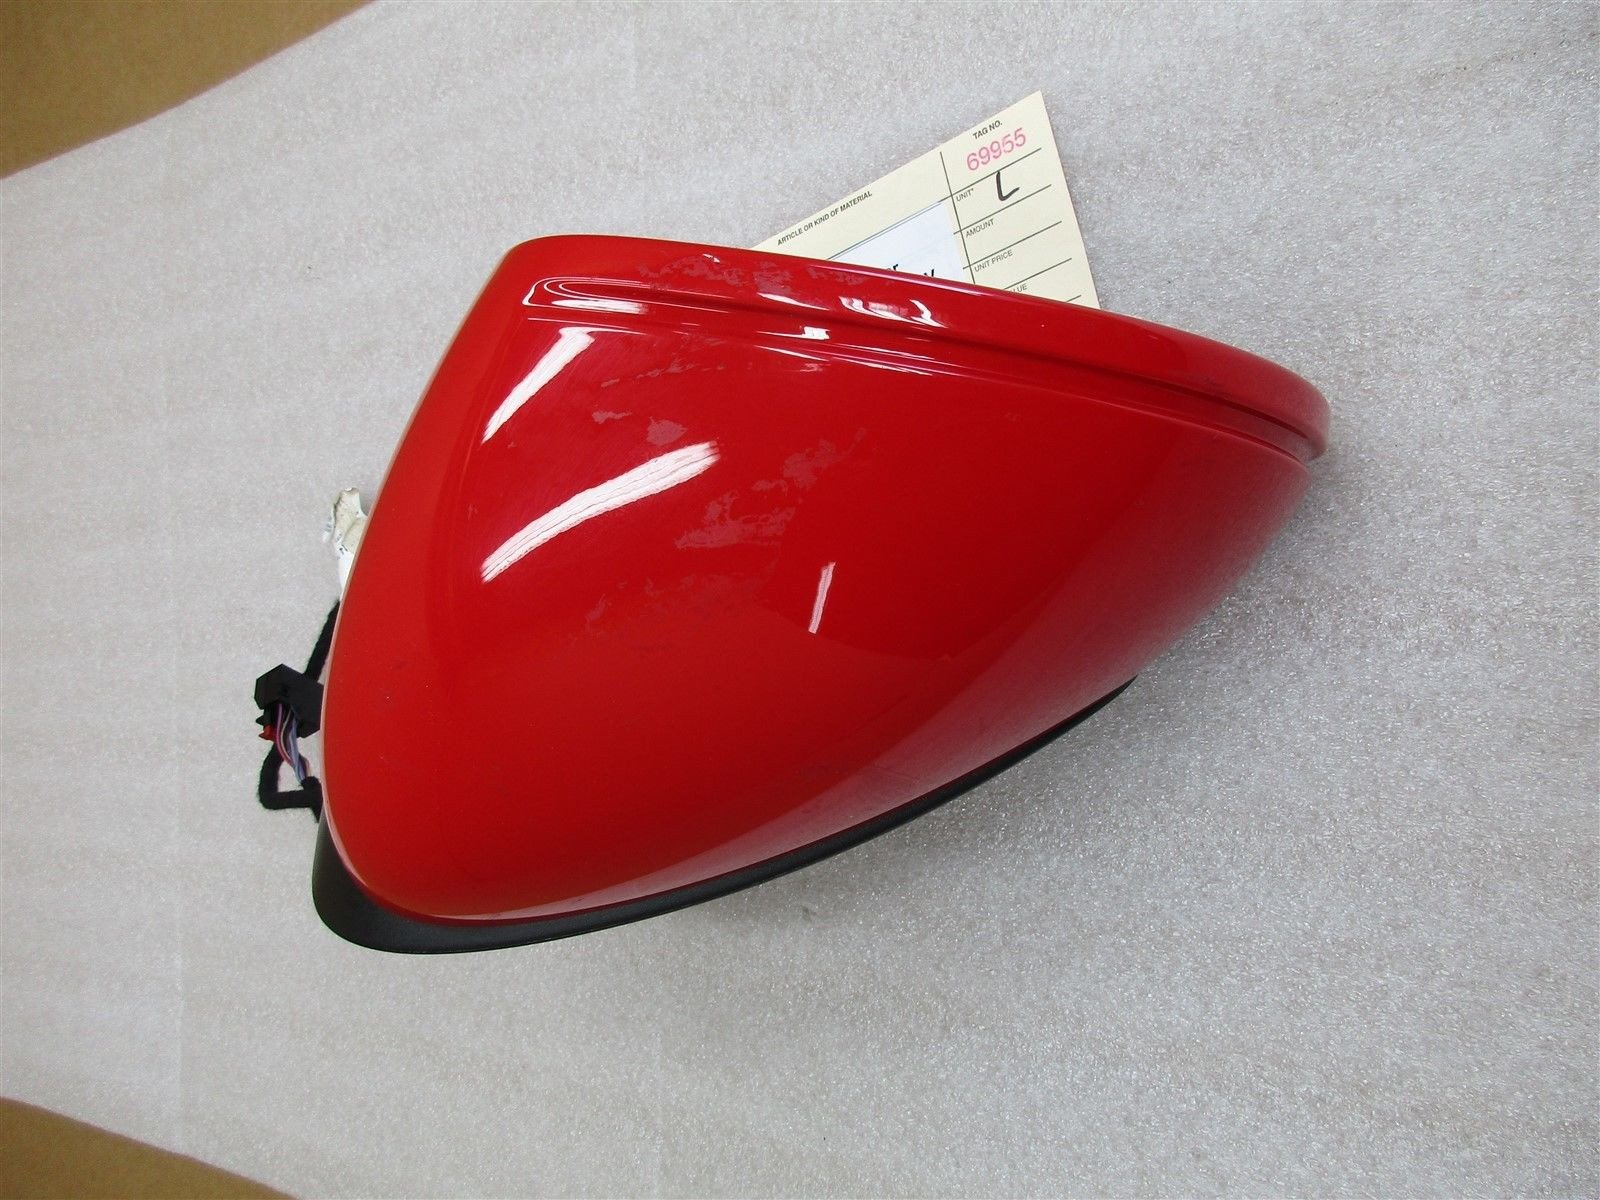 16 Boxster RWD Porsche 981 L EXTERIOR REAR VIEW MIRROR HOUSING Red DRIVER 8,781